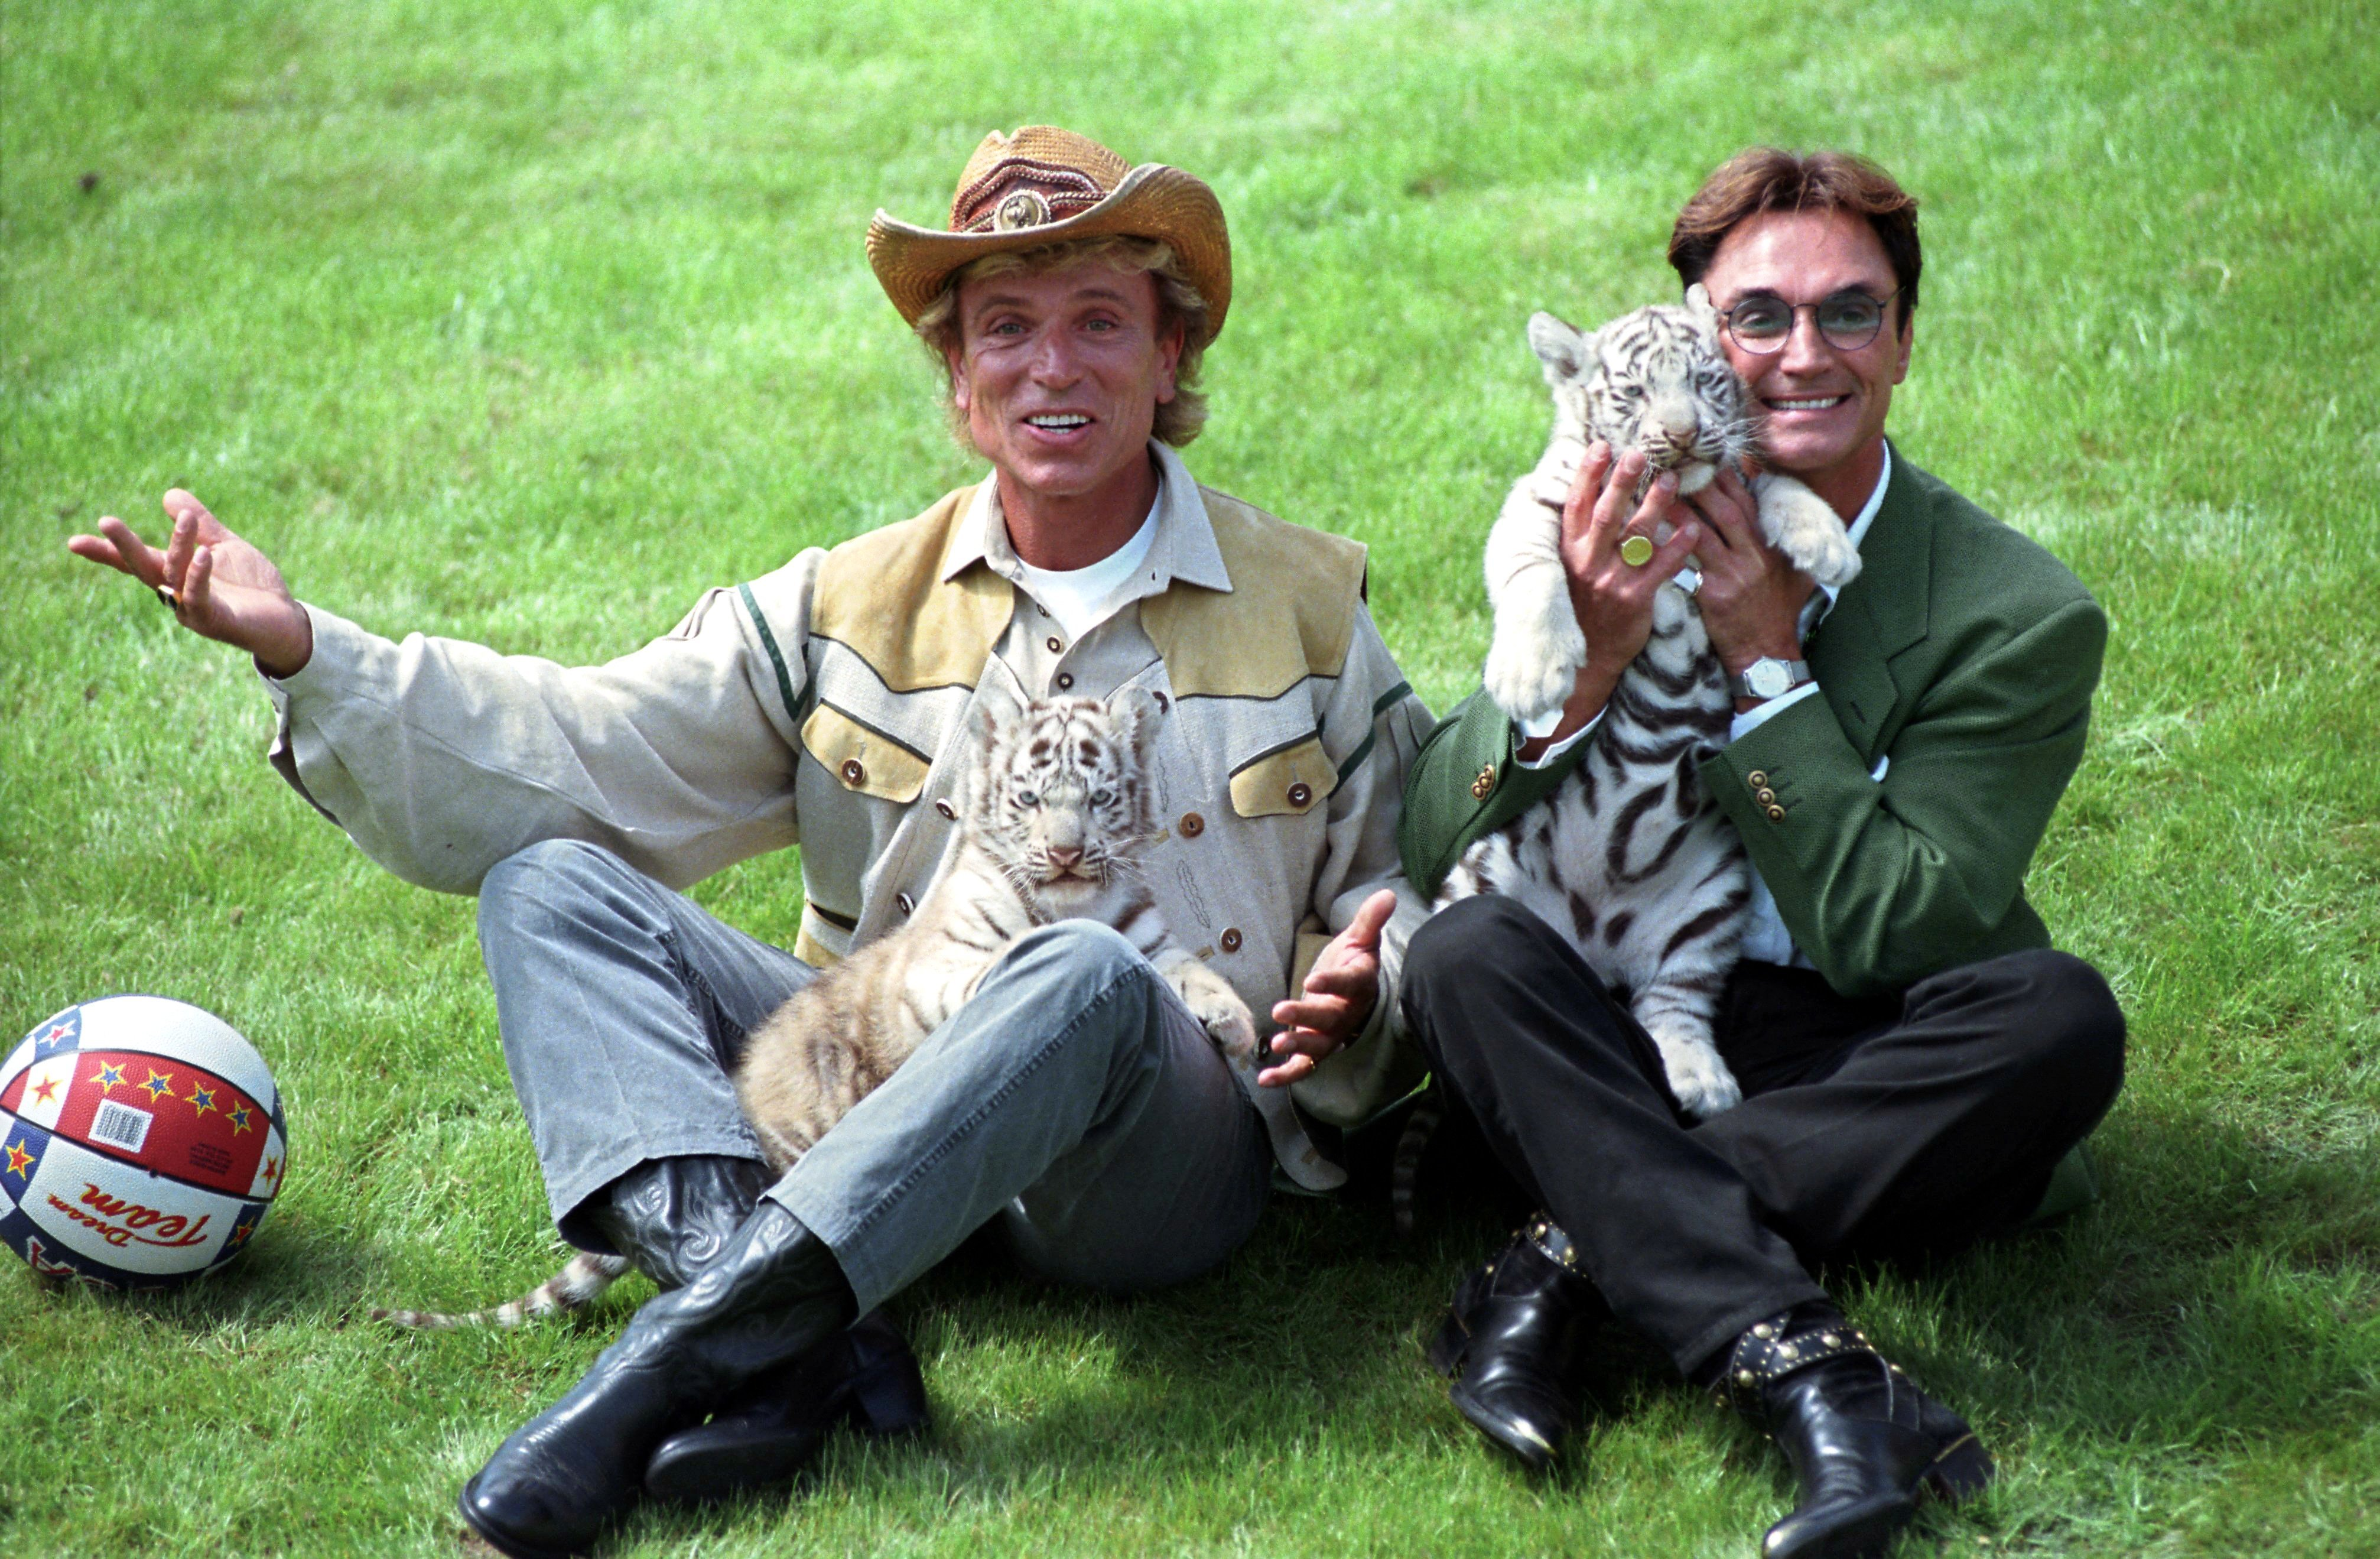 Siegfried and Roy: Remembering Their Flashy Style